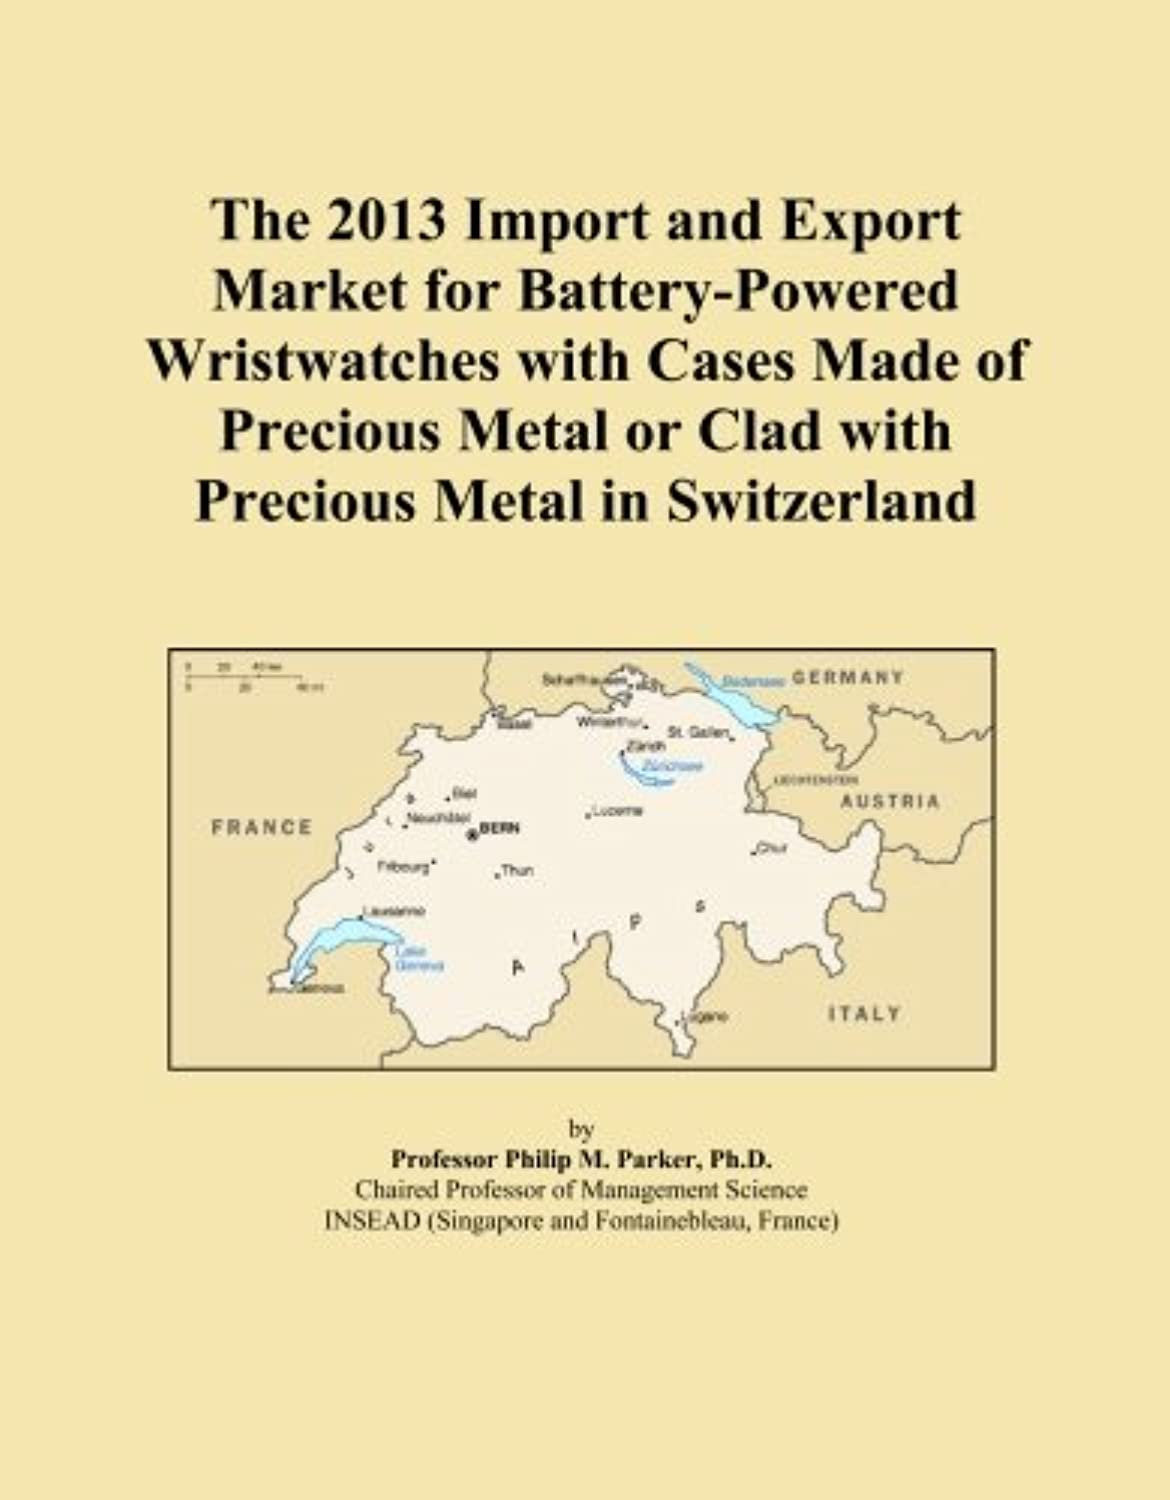 The 2013 Import and Export Market for Battery-Powered Wristwatches with Cases Made of Precious Metal or Clad with Precious Metal in Switzerland